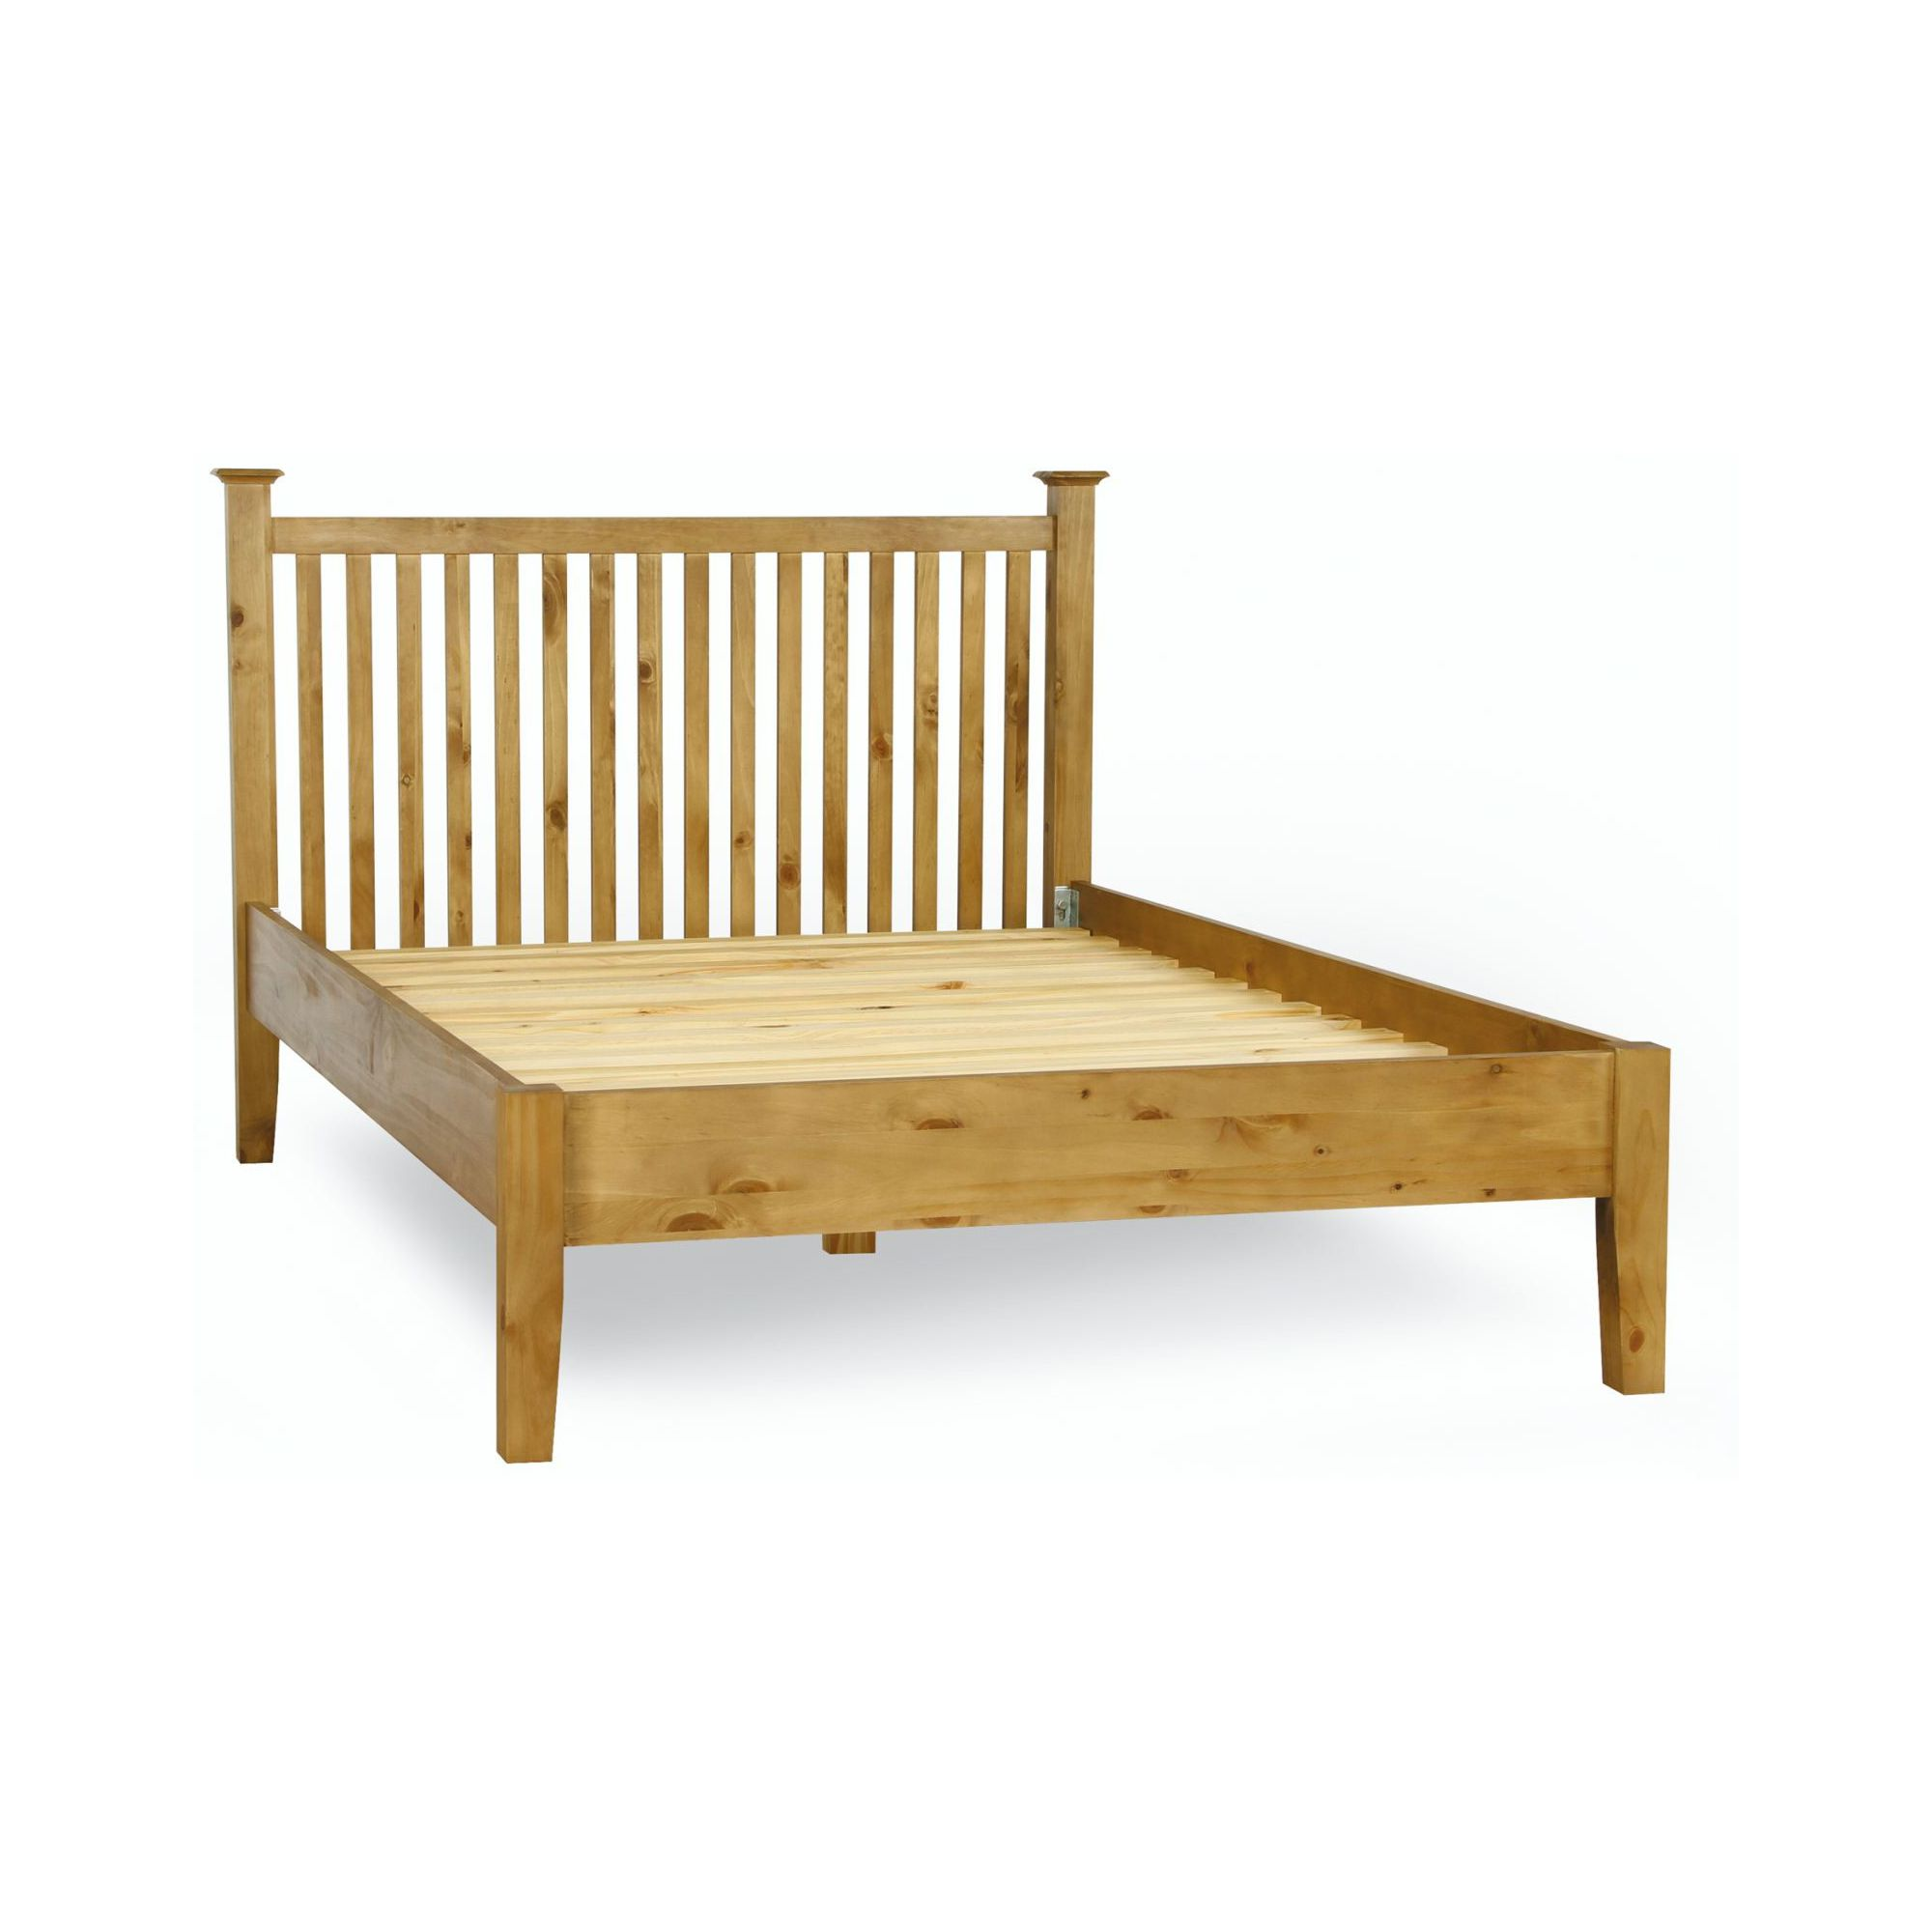 Kelburn Furniture Woodland Pine Bed - Double at Tesco Direct